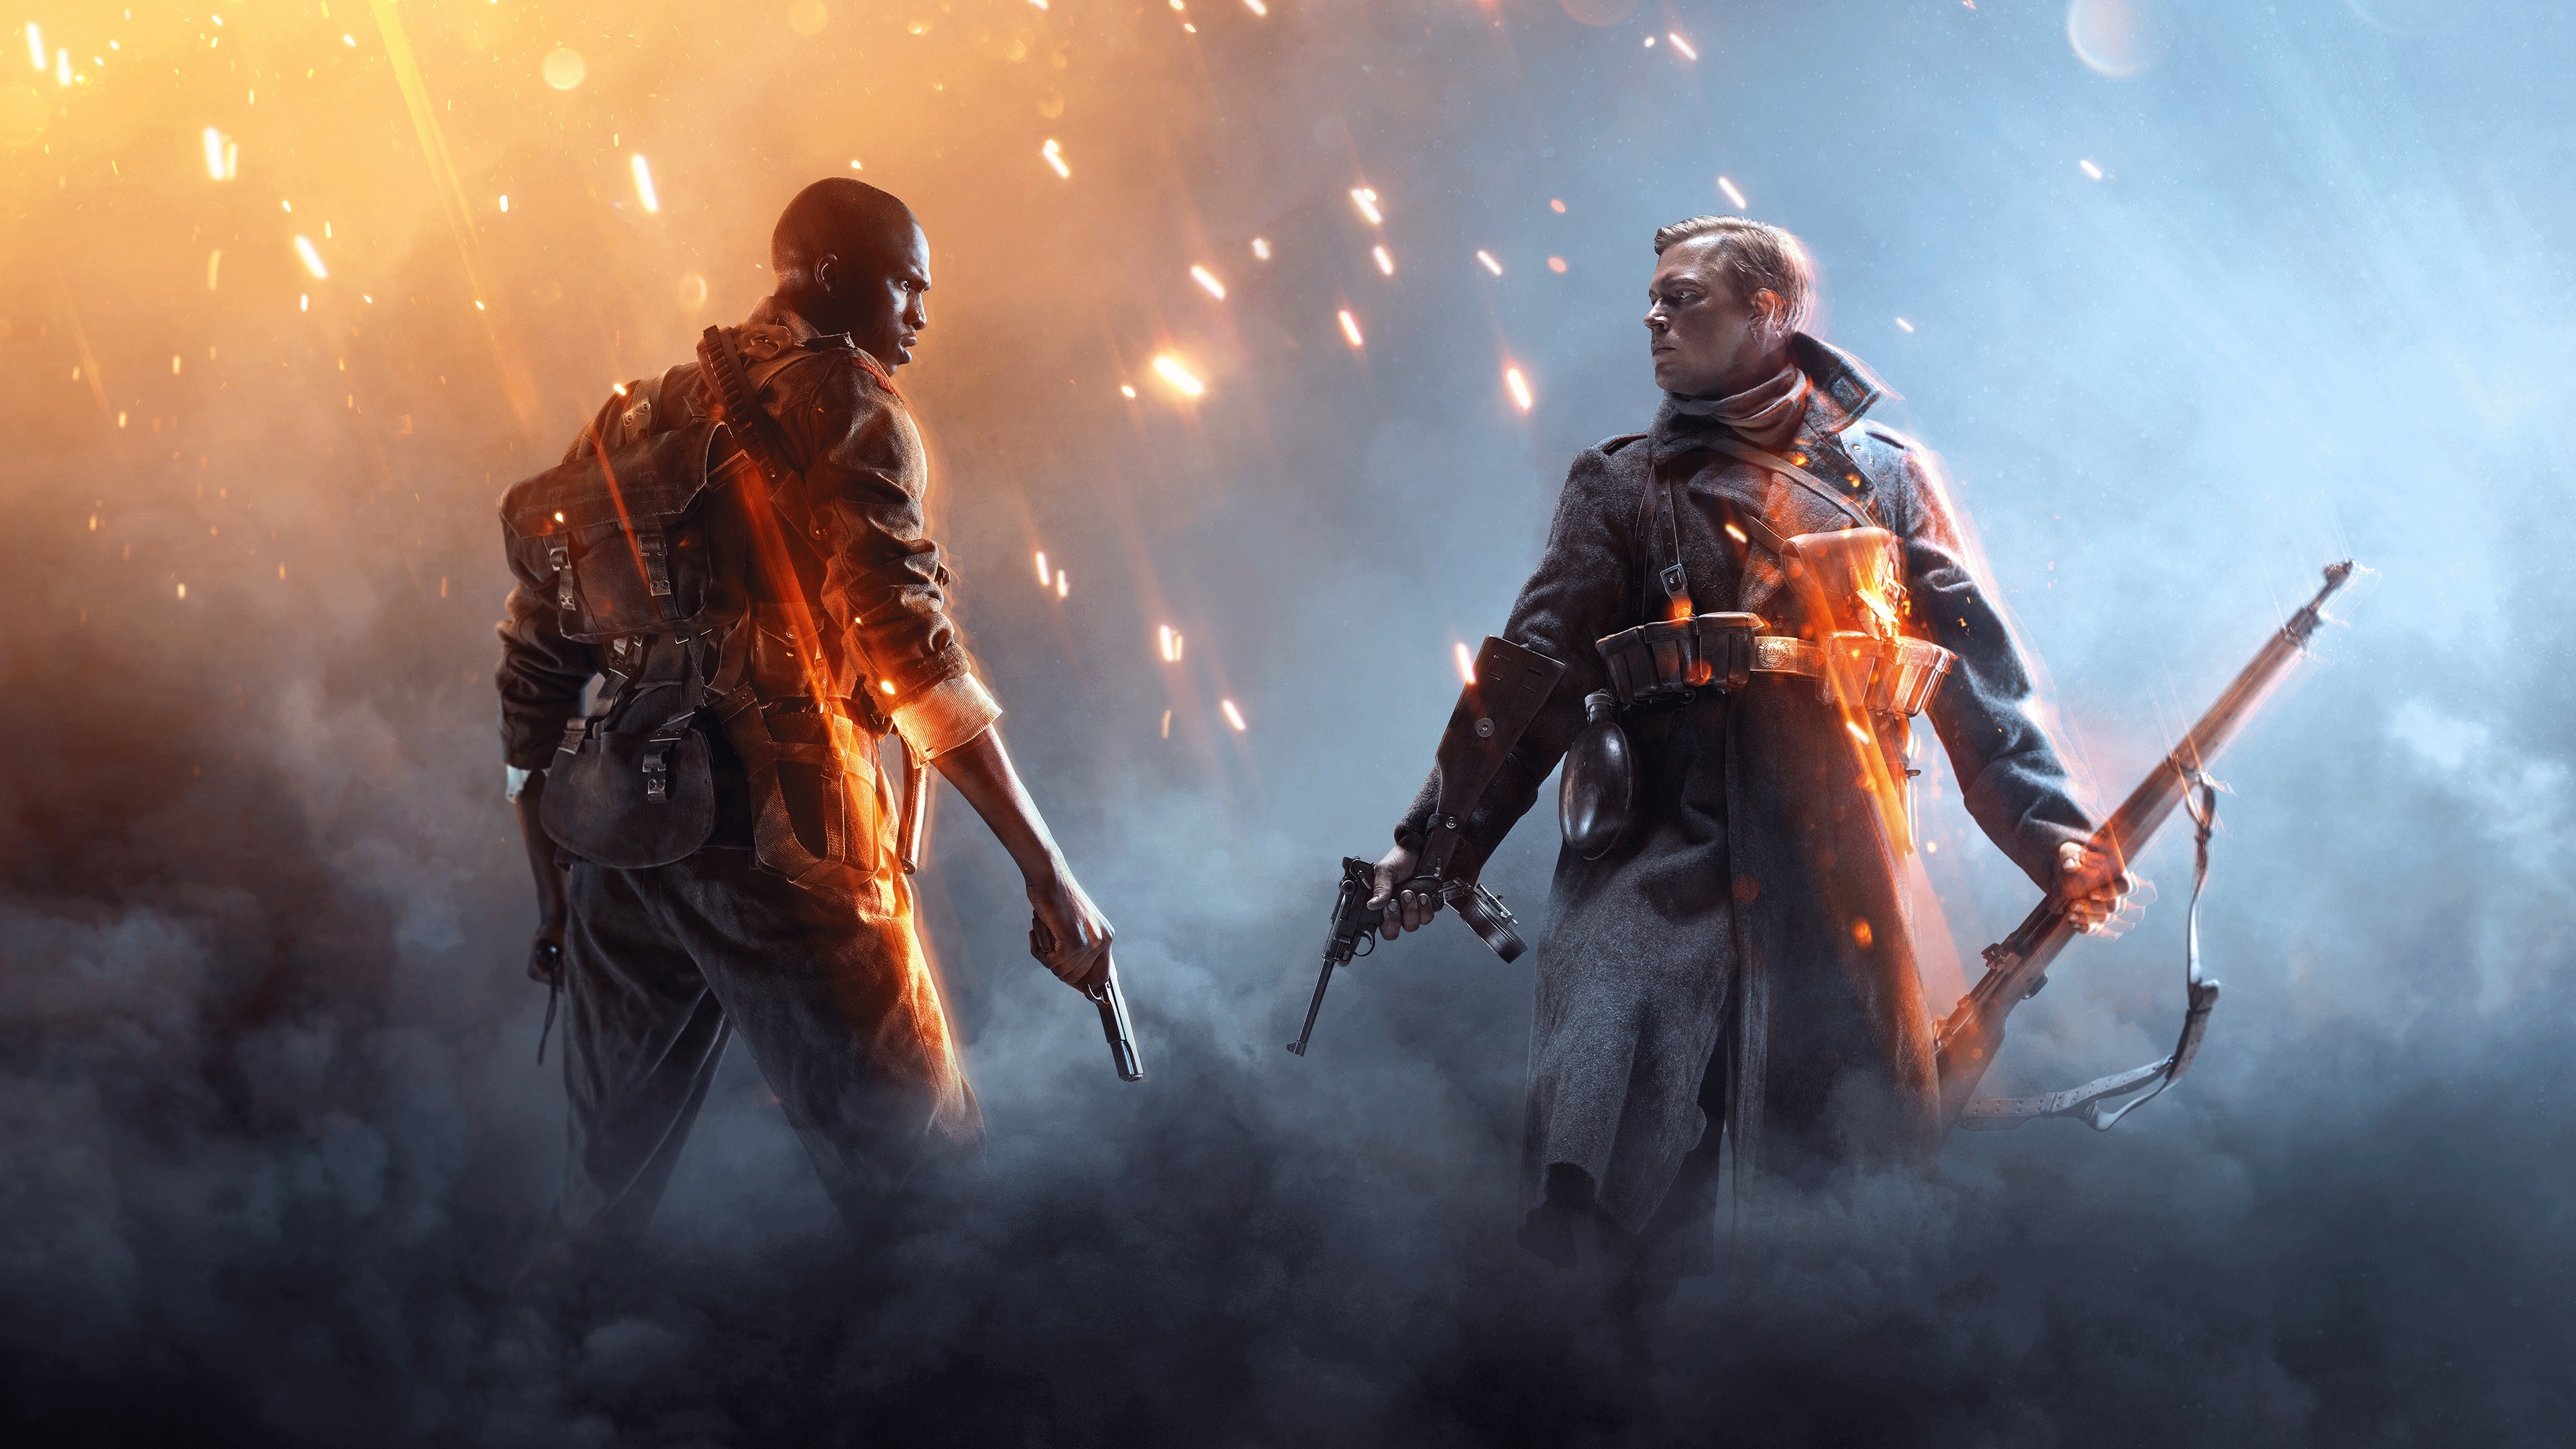 Battlefield 1 Backgrounds, Pictures, Images